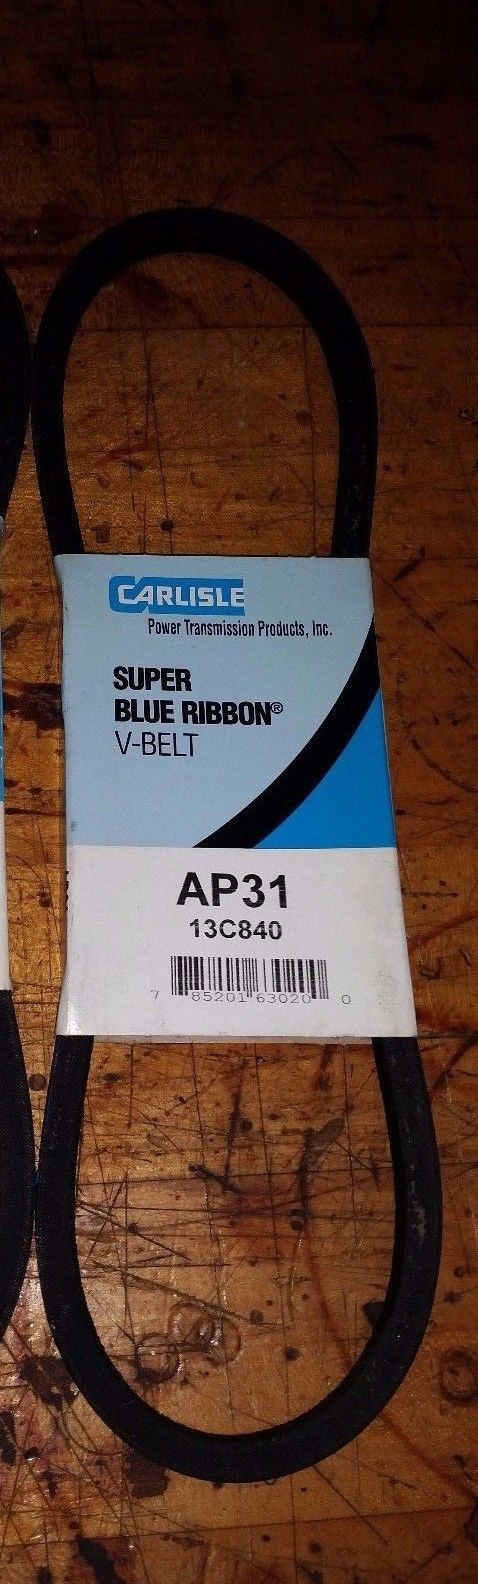 V-BELT VEE BELT AP31 13C840 CARLISLE SUPER BLUE RIBBON